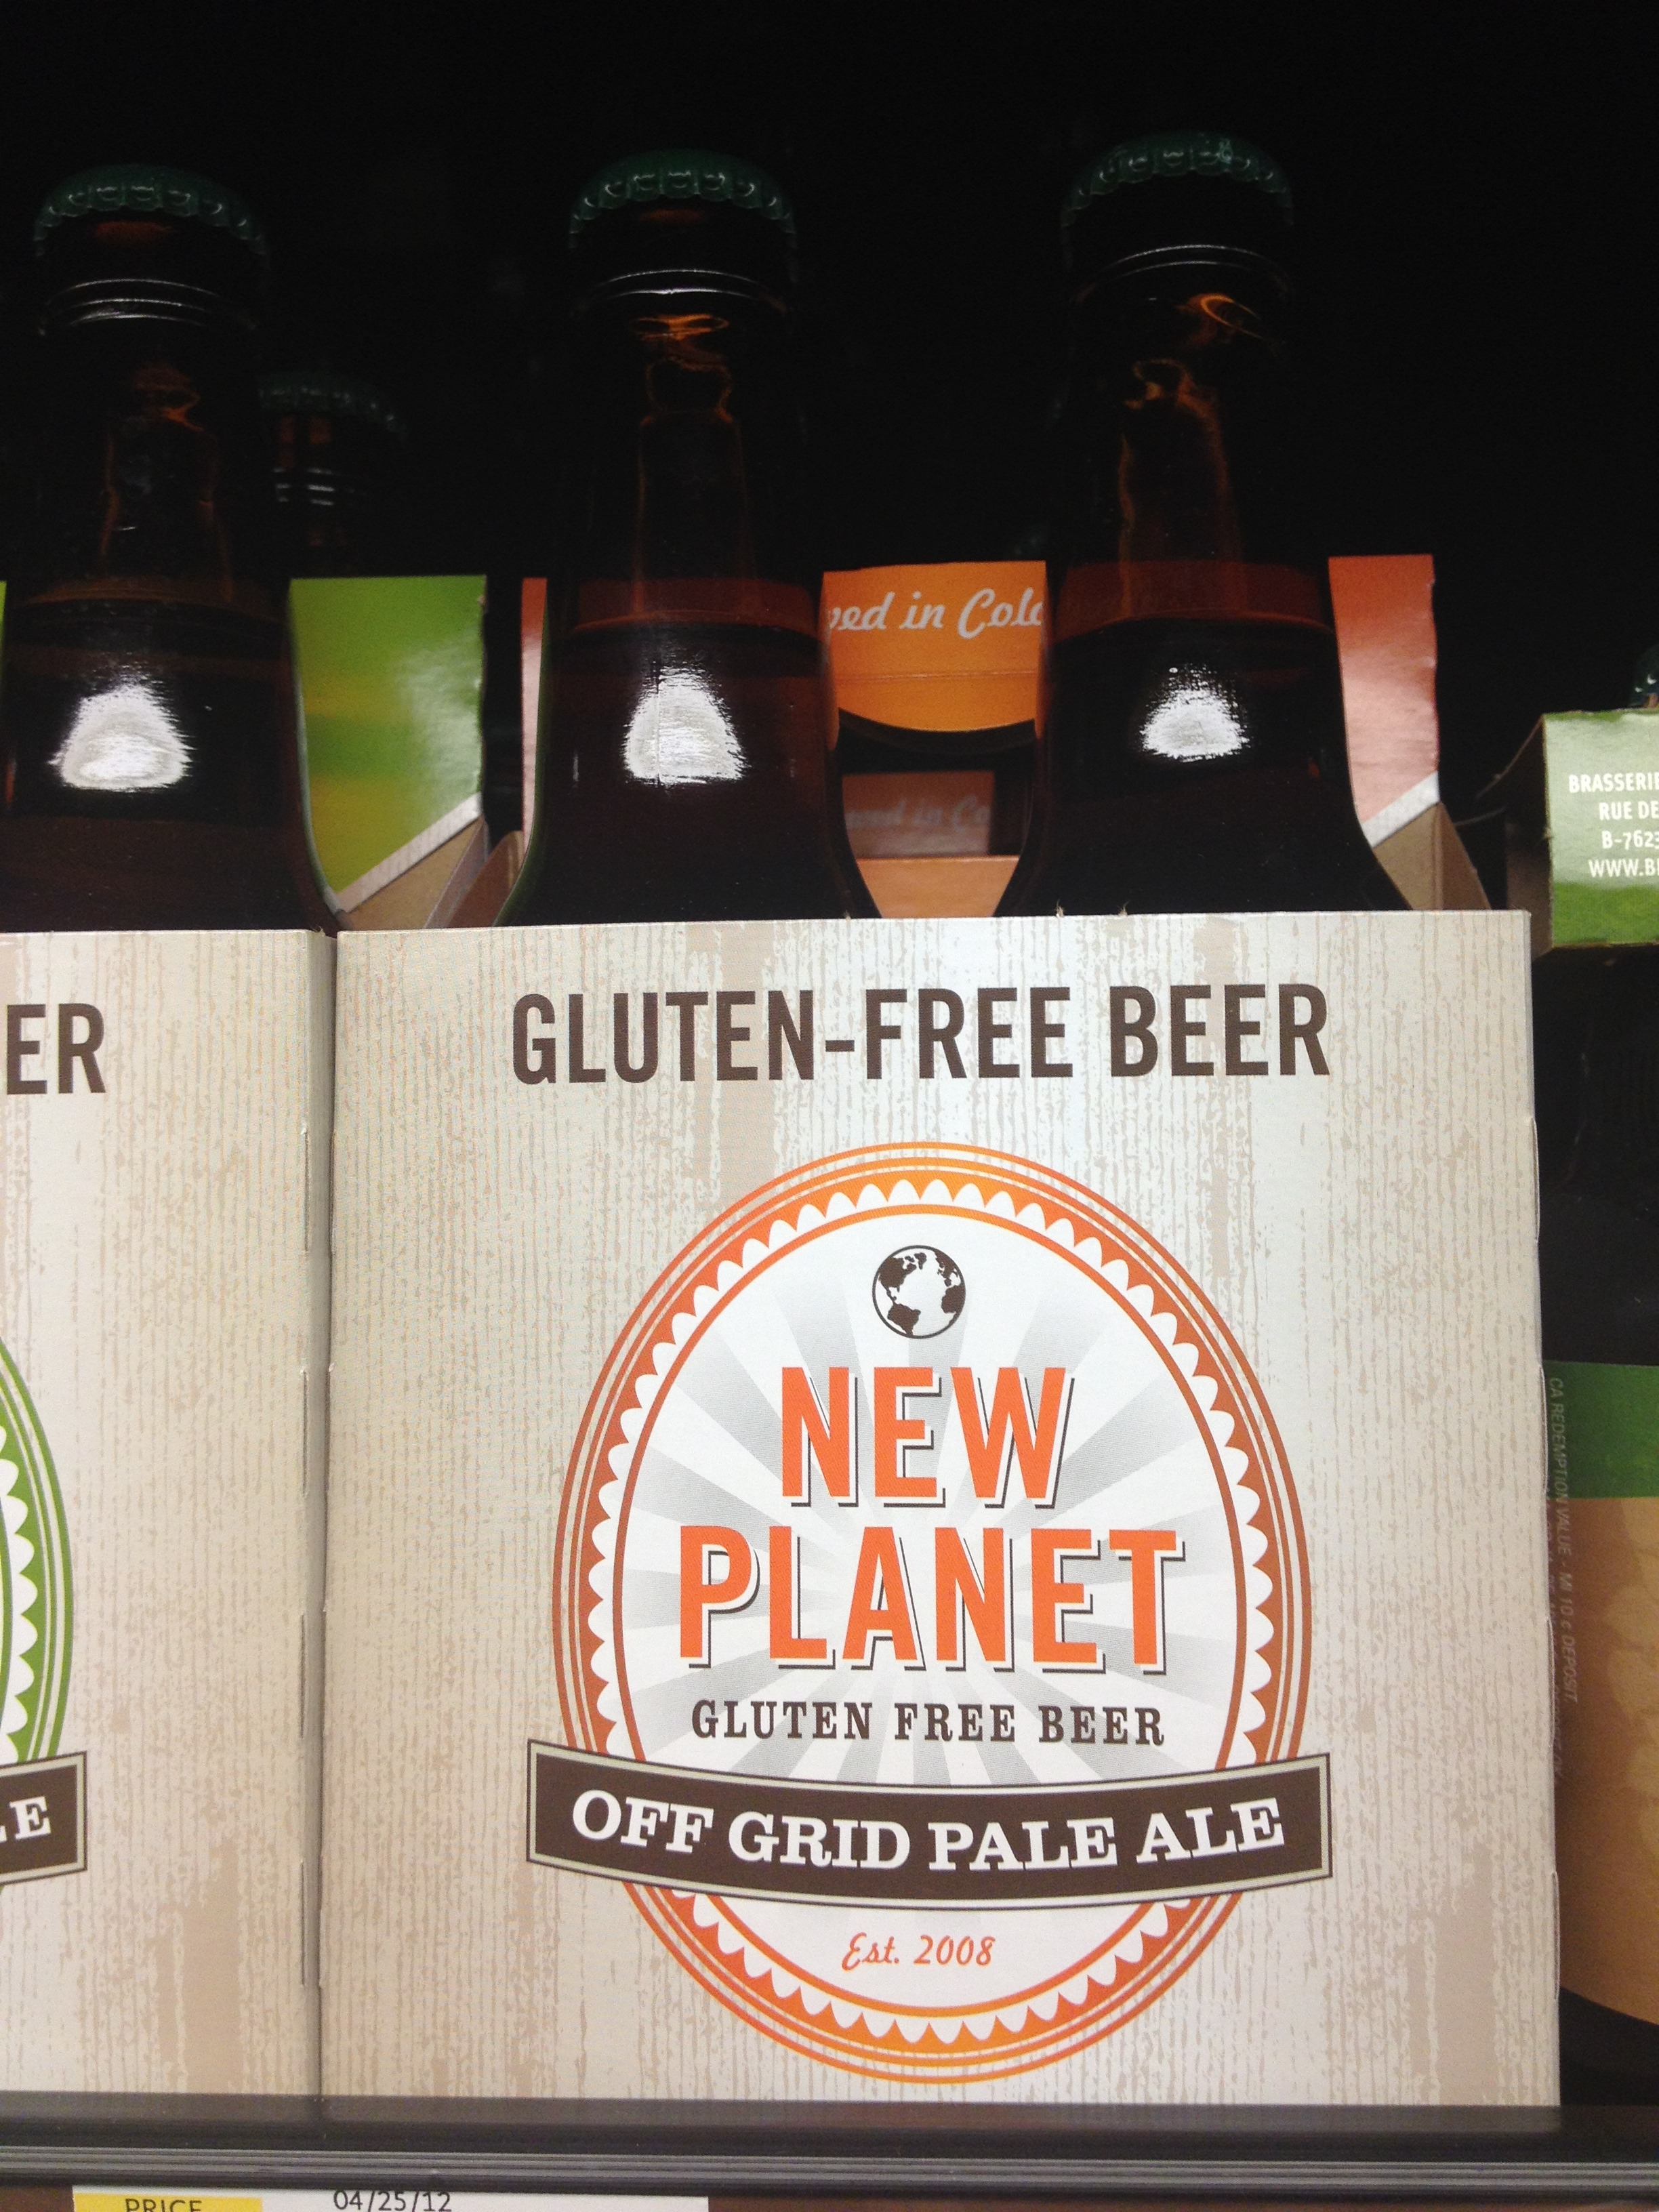 https://ljayhealth.files.wordpress.com/2012/07/gluten-free-beer.jpg